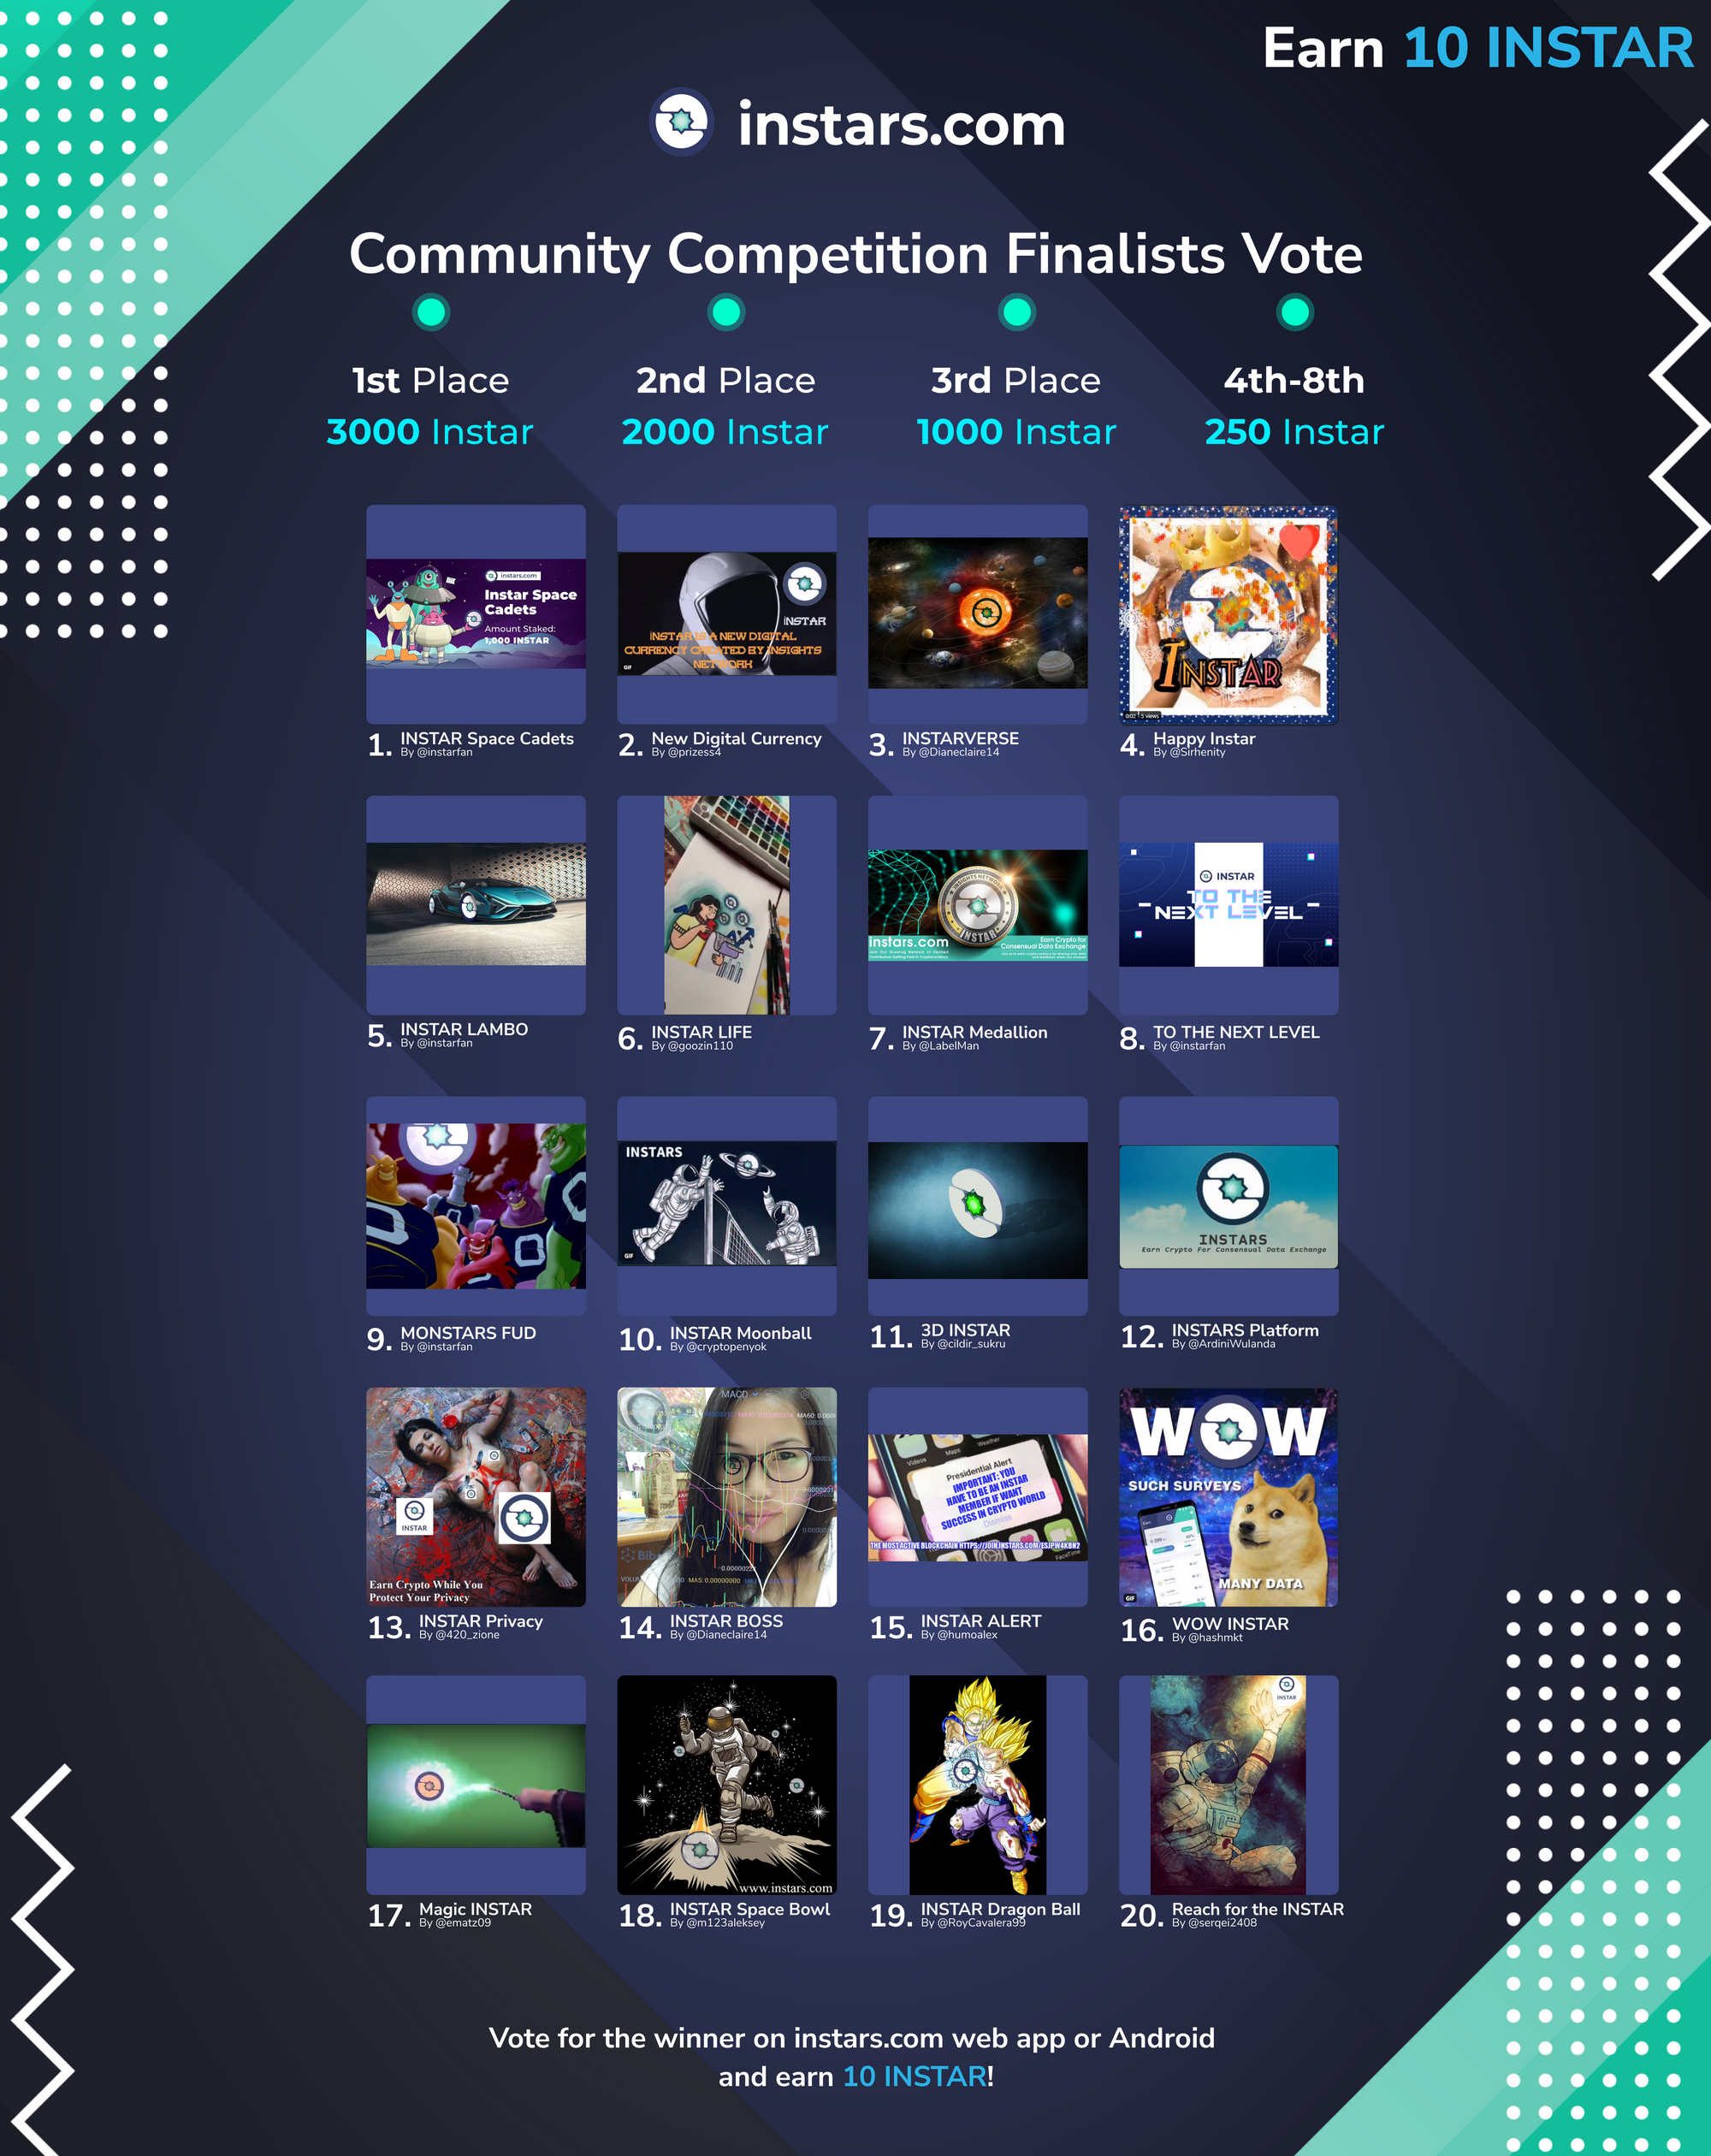 Instars Community Competition Finalists Vote